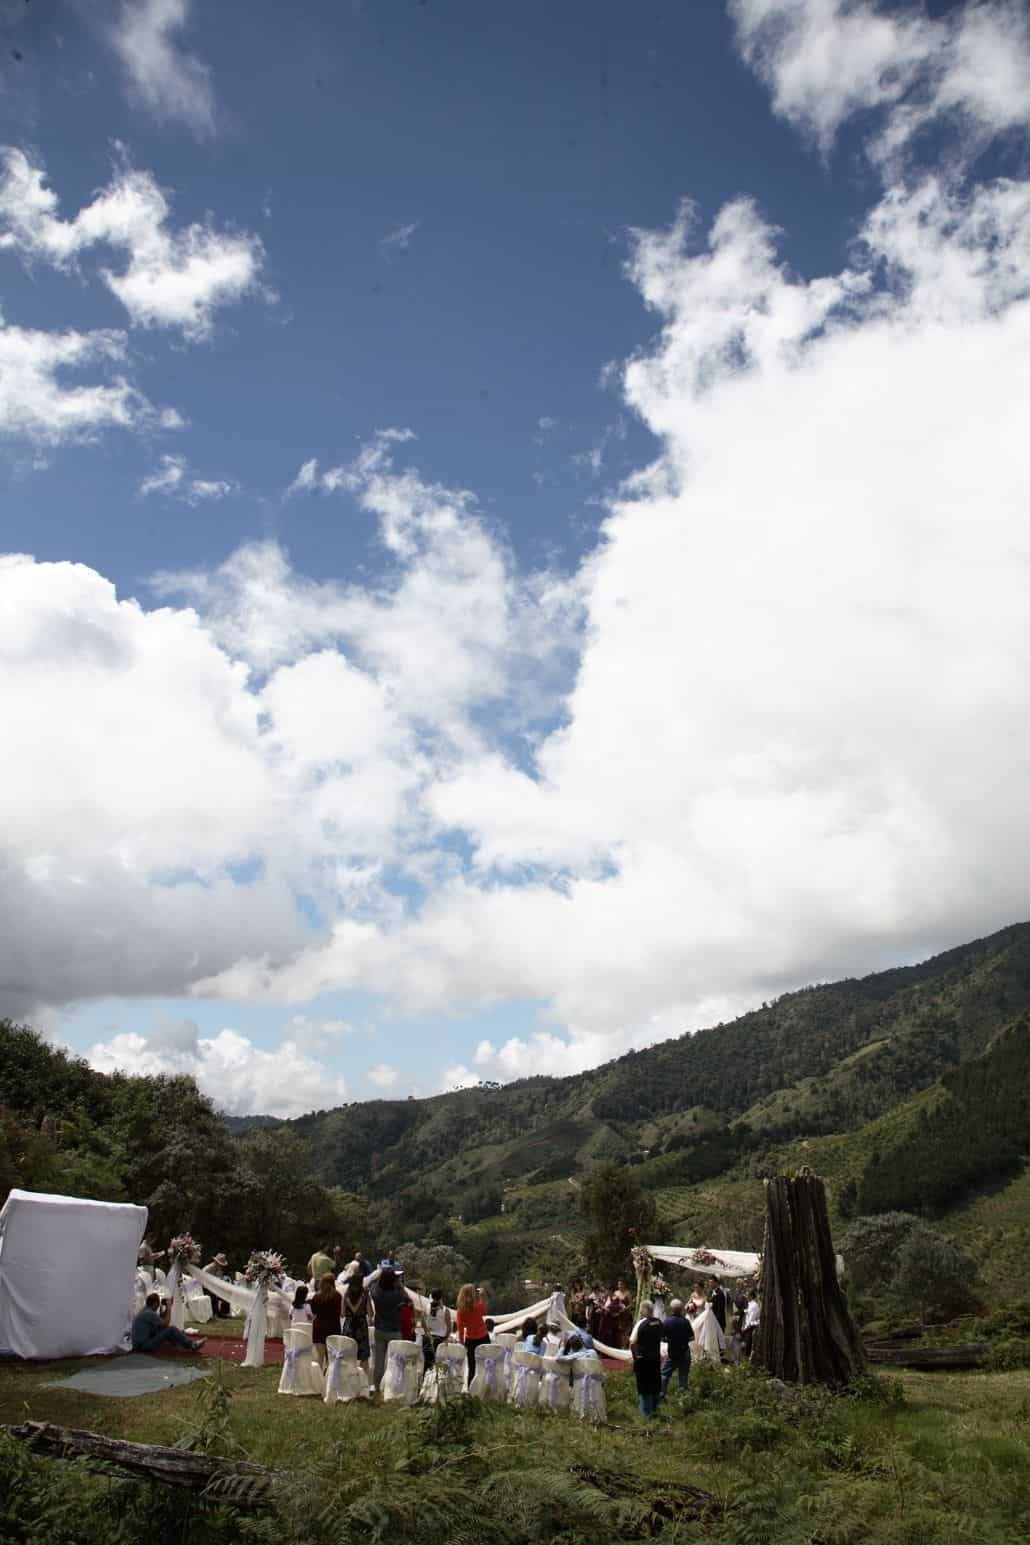 Talamanca cloud forest wedding ceremony, mountain background, white flower topped wedding aisle swags at Costa Rican destination wedding, blue skies and white clouds.